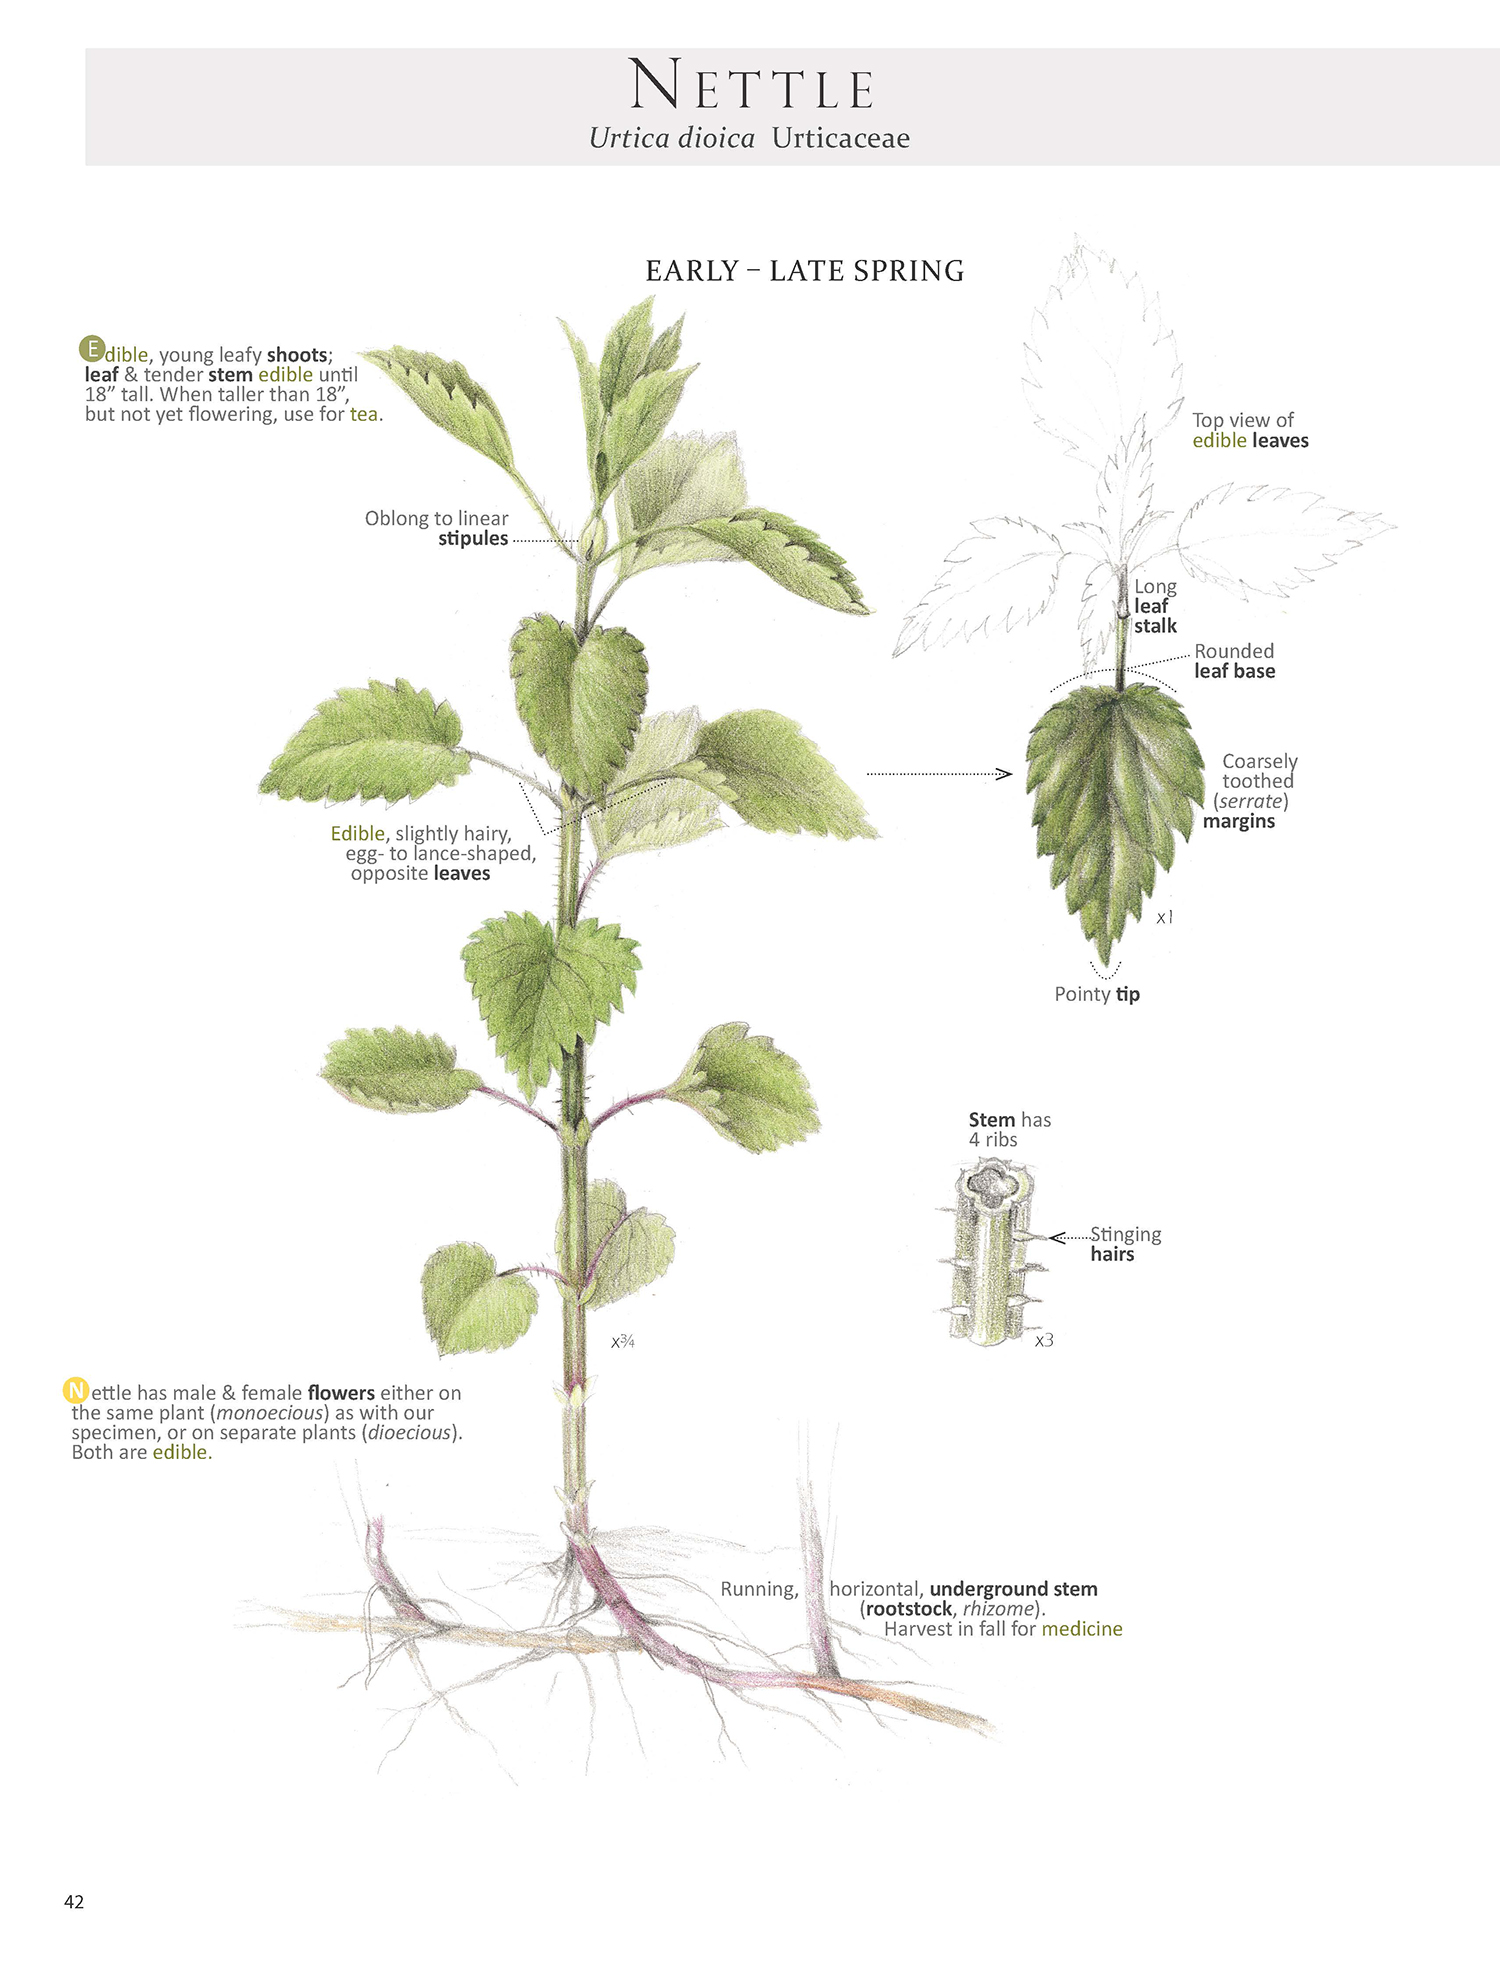 Spring Nettle Plant Map from our book Foraging & Feasting: A Field Guide and Wild Food Cookbook by Dina Falconi; illustrated by Wendy Hollender